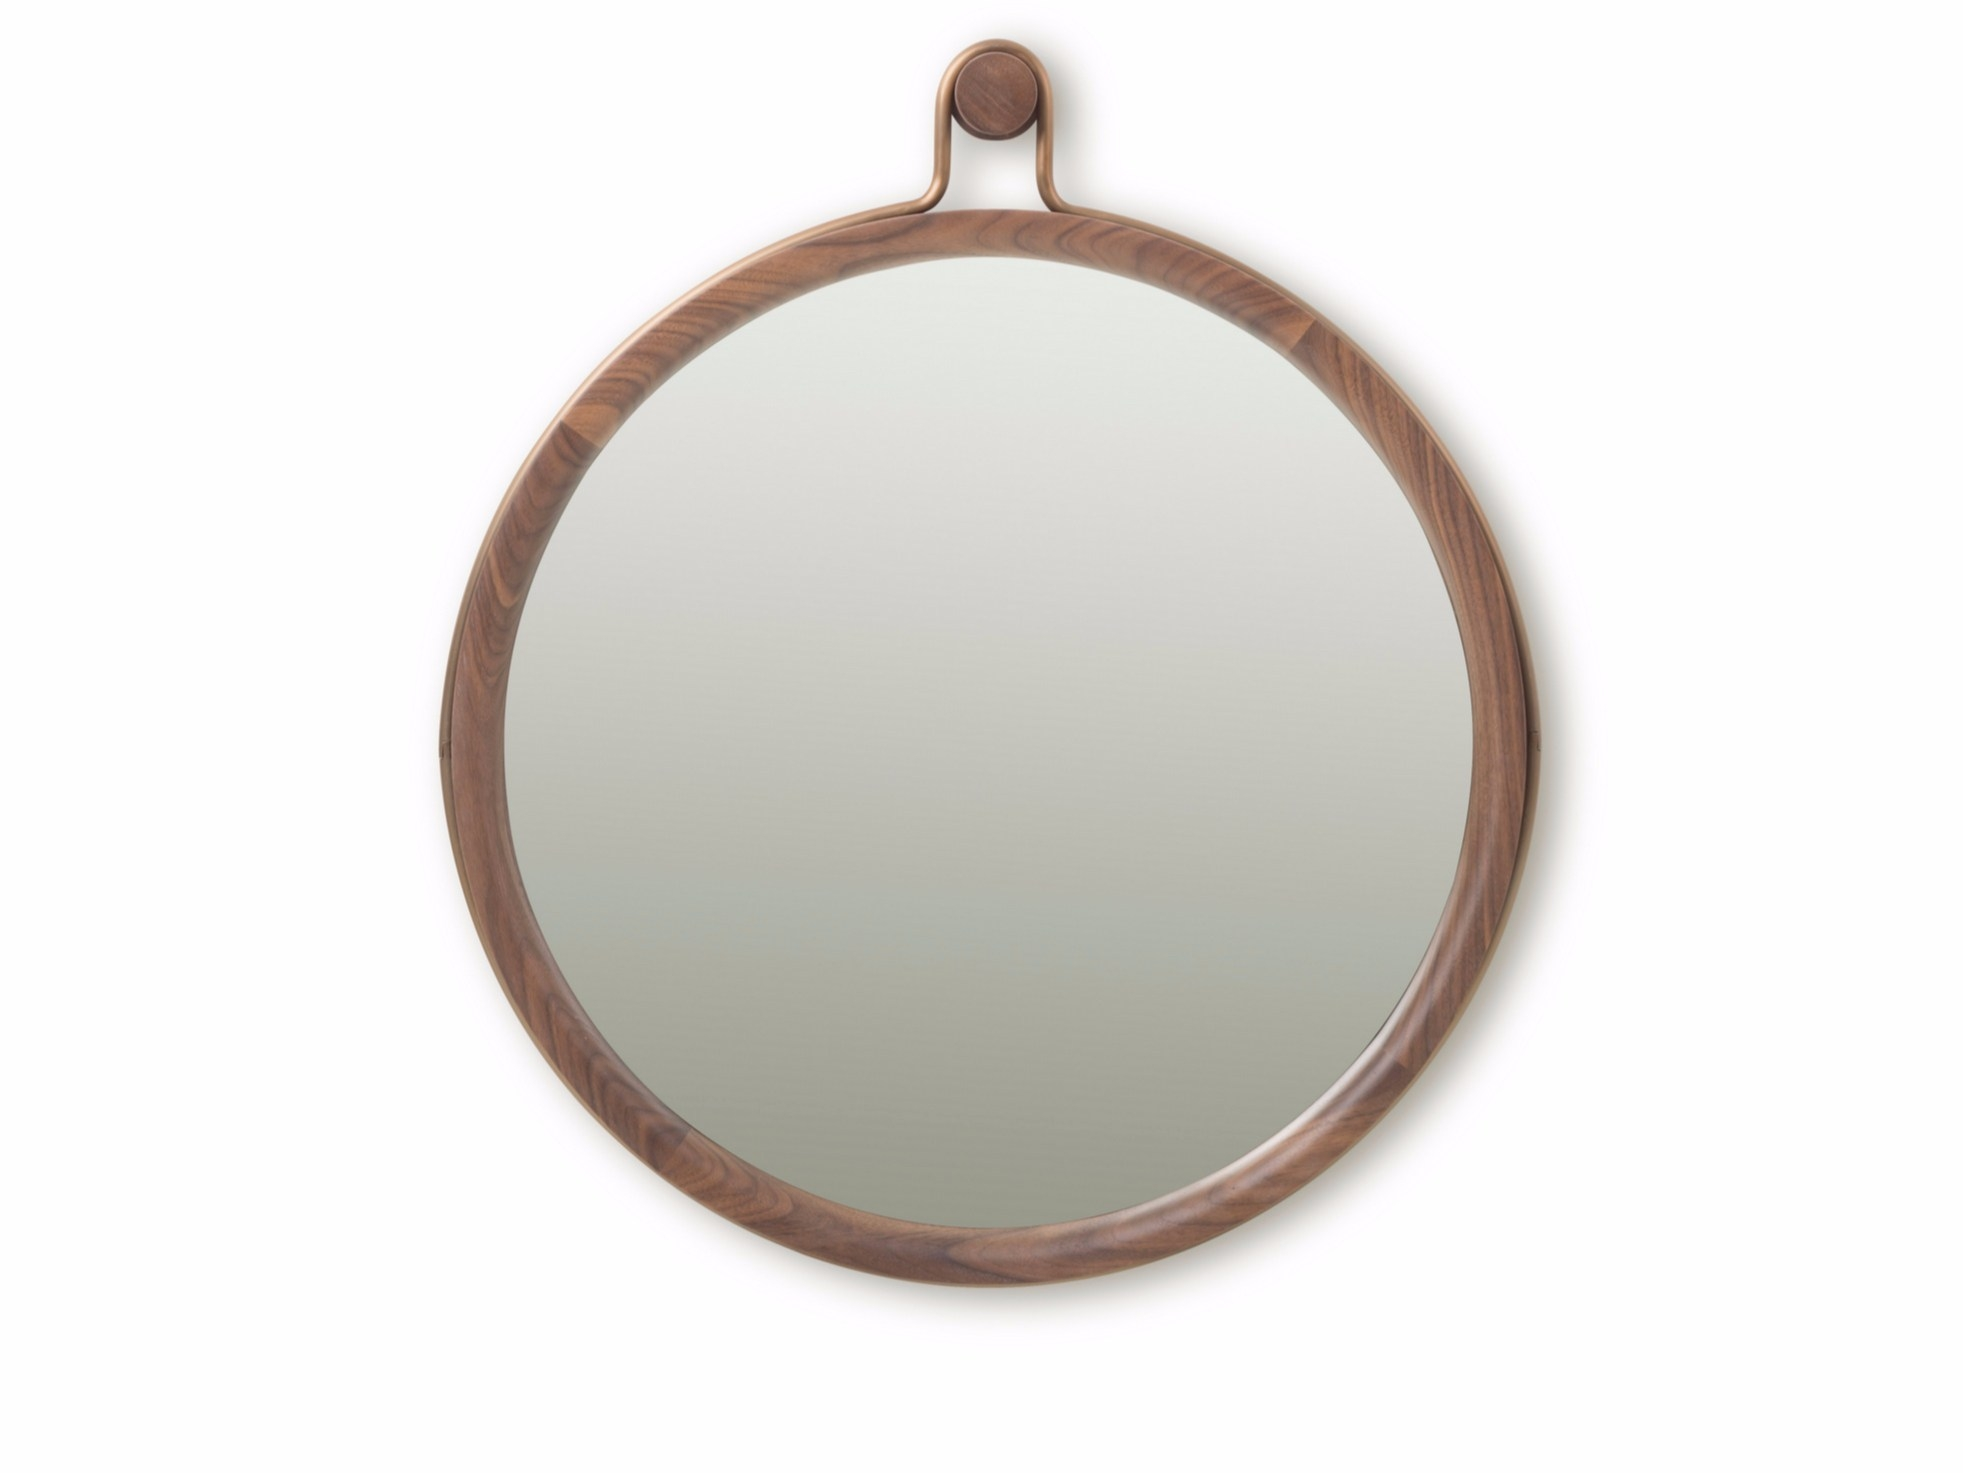 Wall Mounted Framed Round Mirror Utility Round Mirror Large Inside Round Mirror Large (Image 14 of 15)